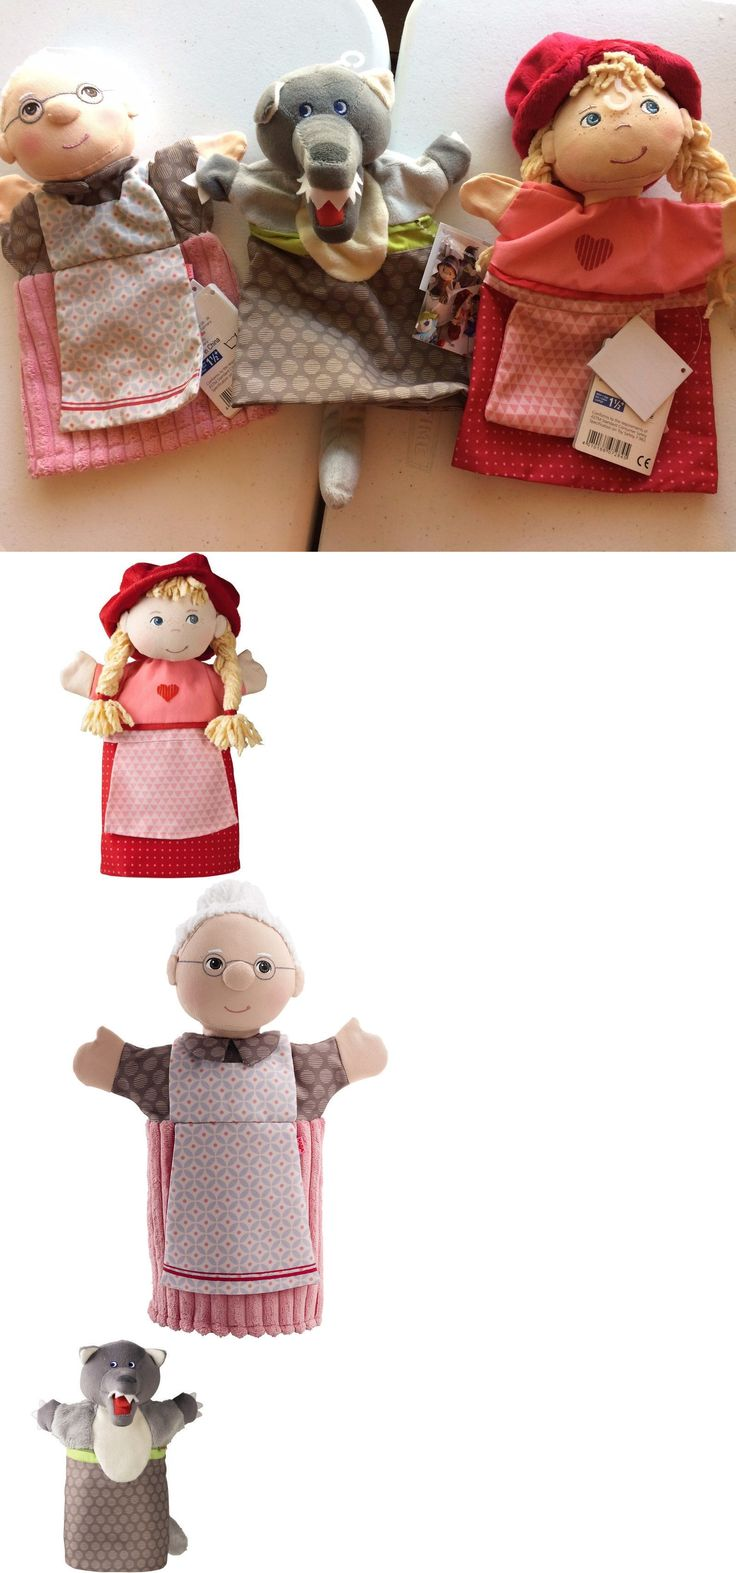 1970-Now 11741: Haba Hand Puppet Set Little Red Riding Hood, Wolf And Grandma, Ages 18 Month+ -> BUY IT NOW ONLY: $43.5 on eBay!